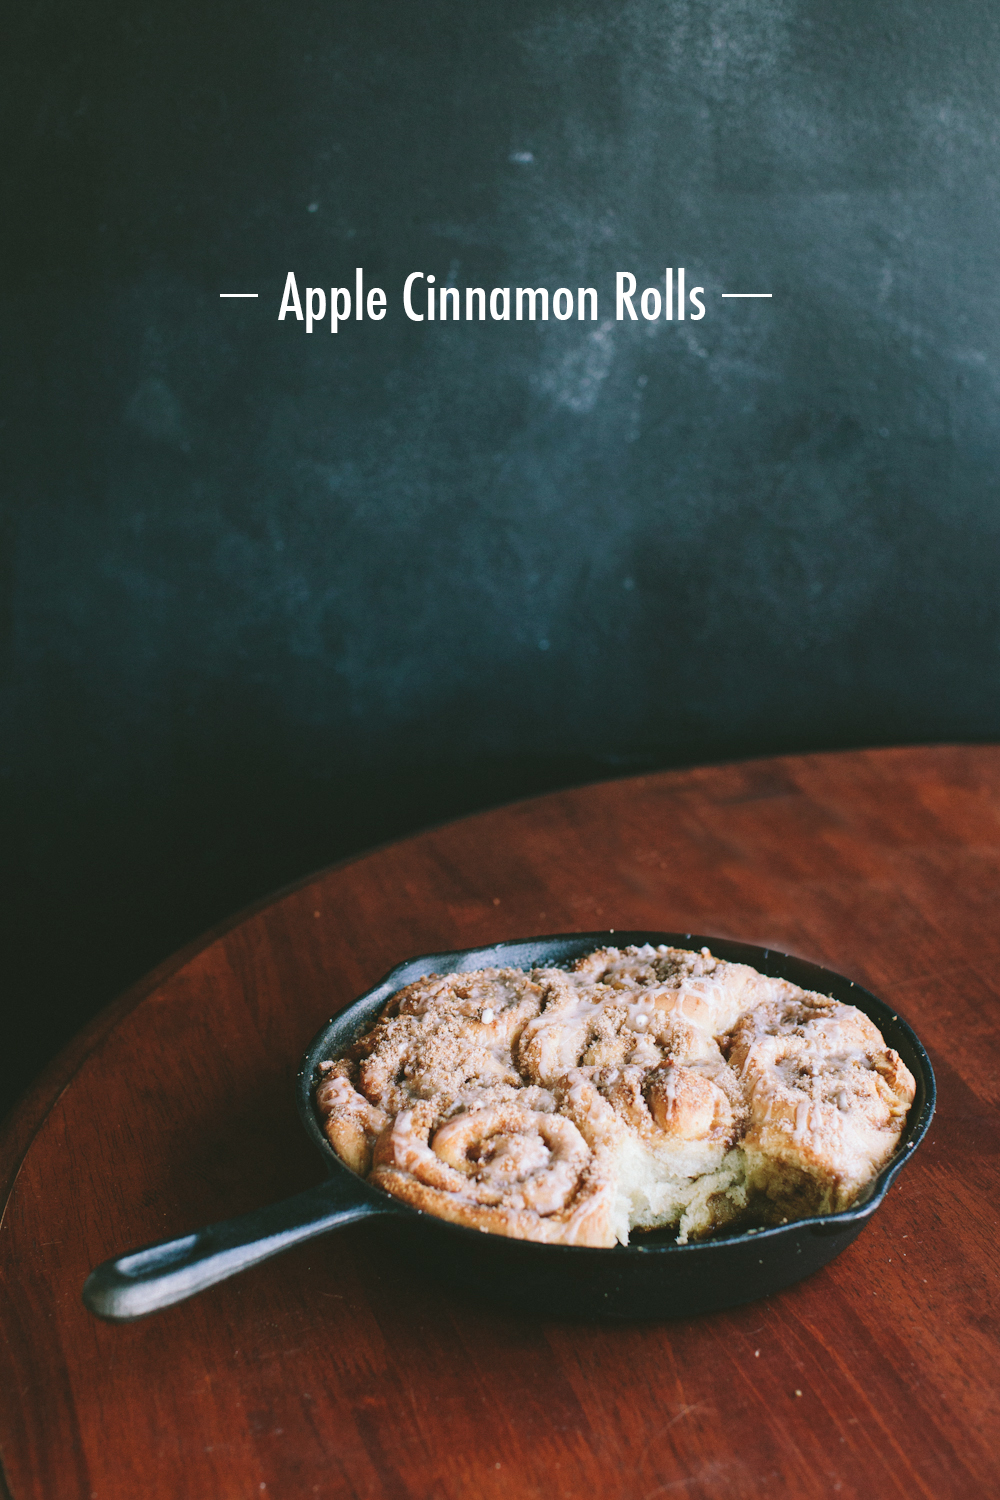 Apple Cinnamon Rolls by Paige Jones